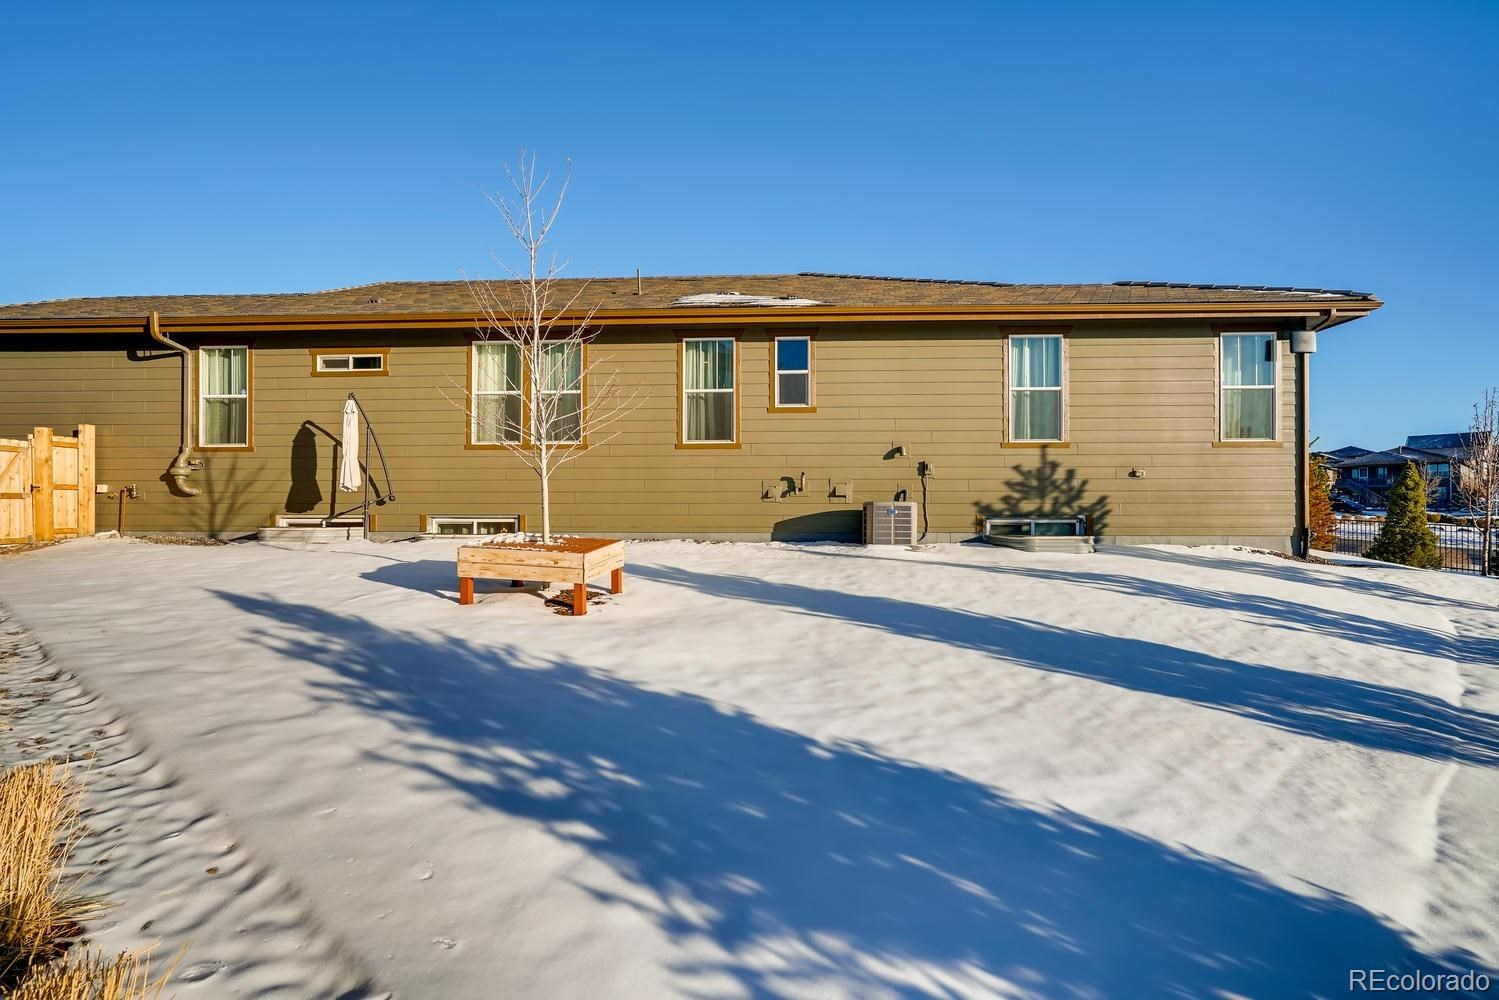 MLS# 3362695 - 10182 Nadine Avenue, Parker, CO 80134